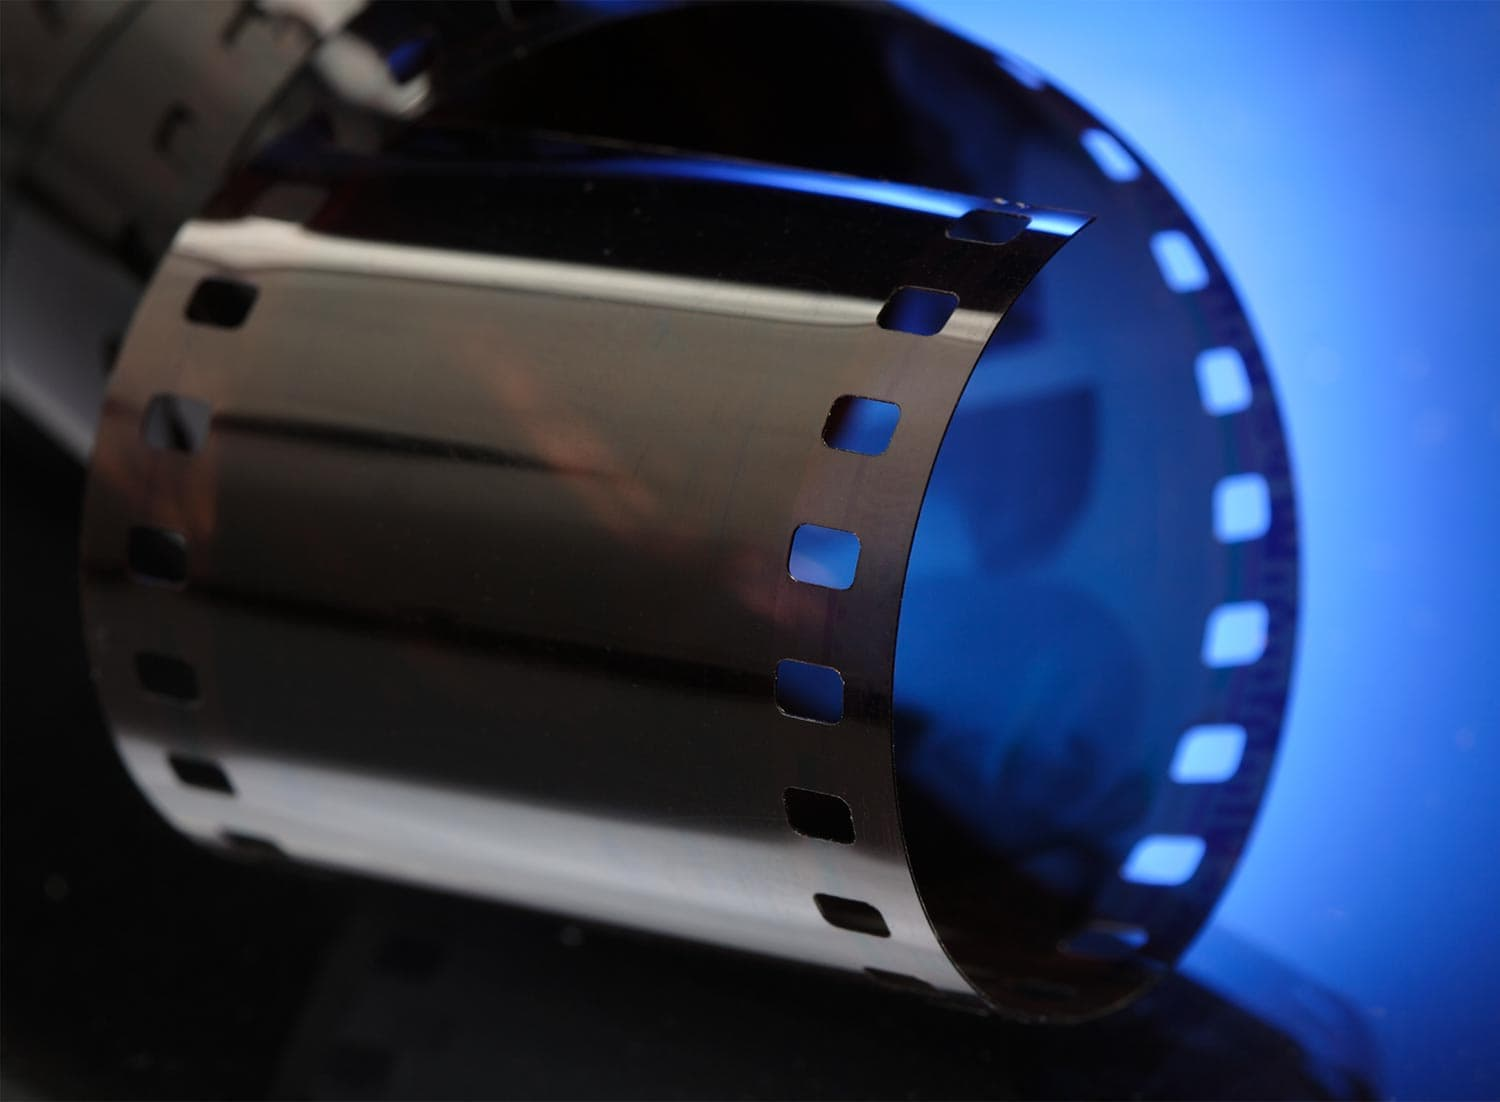 The Best Film Scanner | Cultured Kiwi